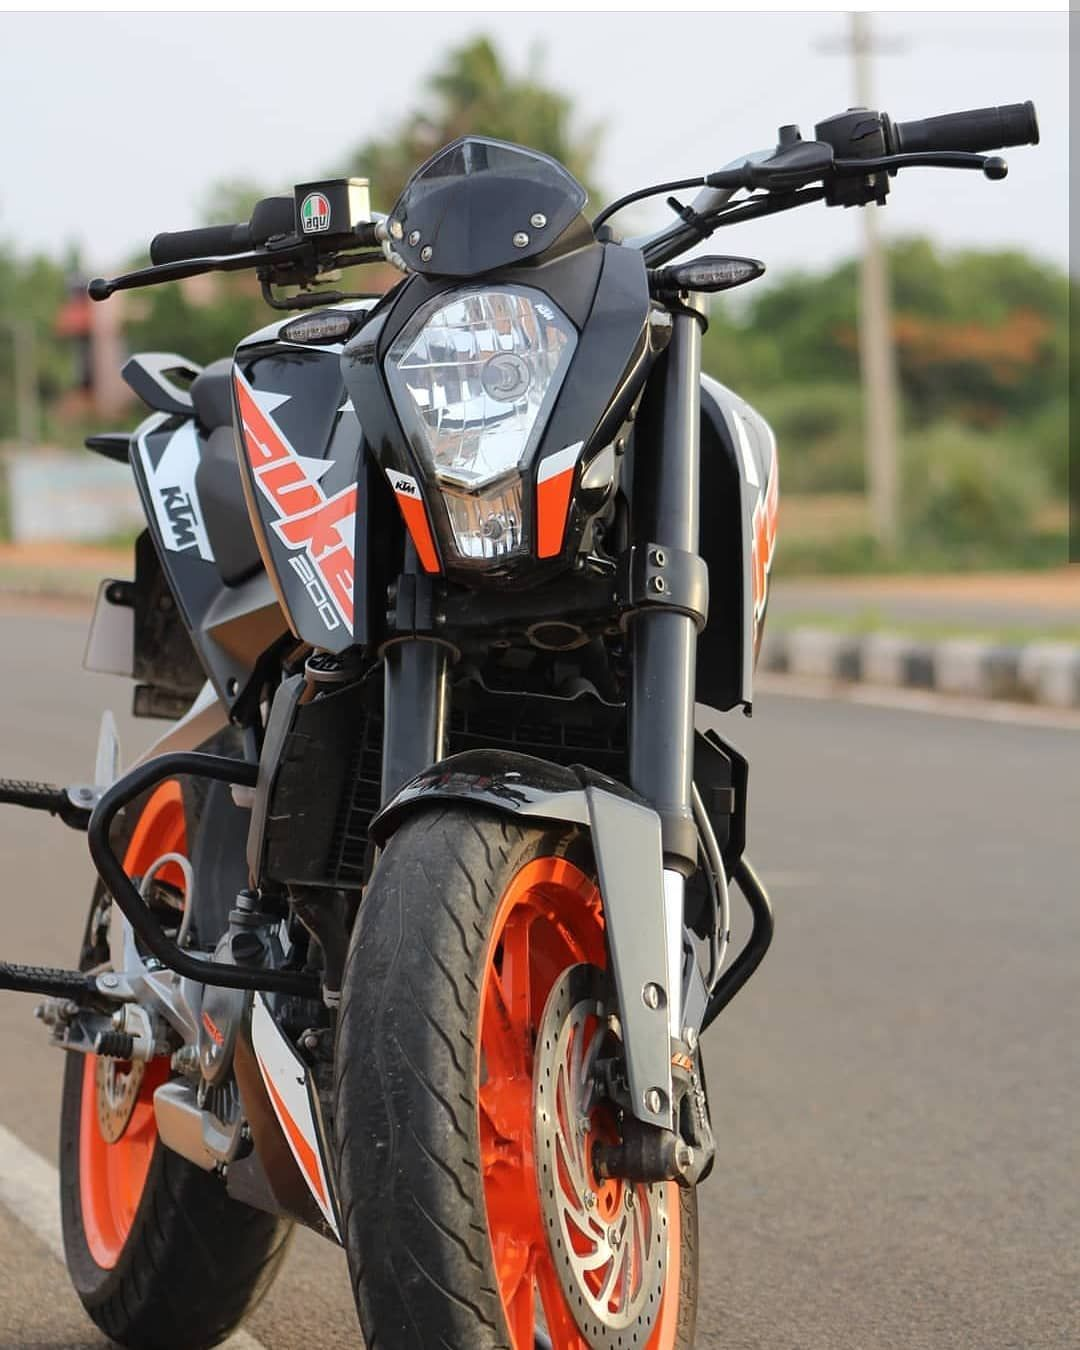 Pin By Kandy Waghamare On Download Background Duke Bike Ktm